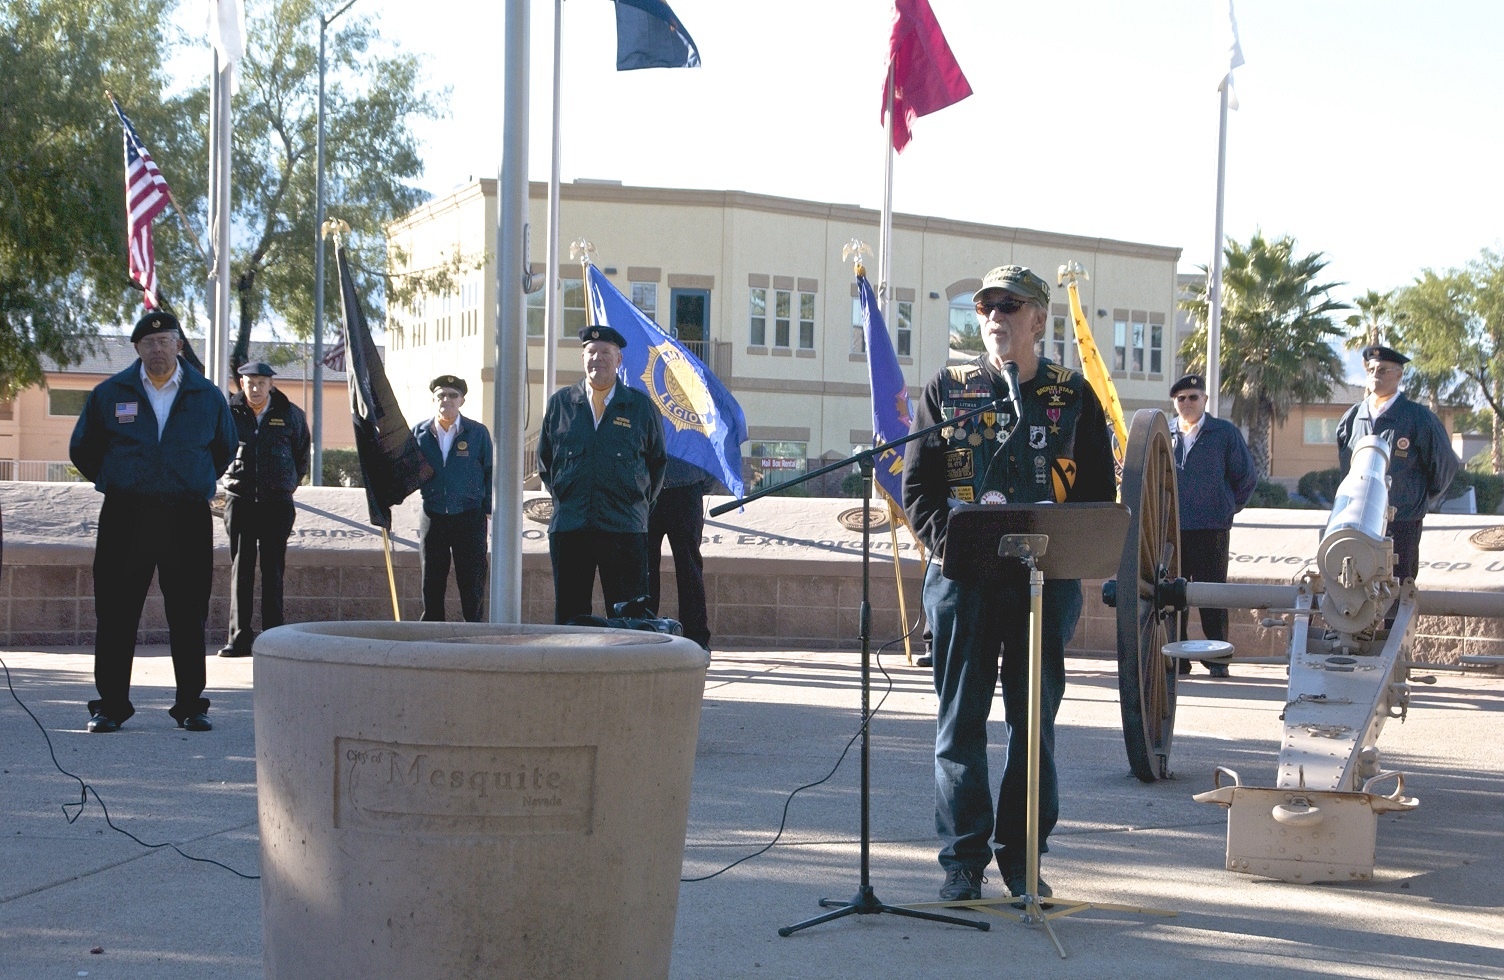 Veterans Honored in Mesquite Ceremony